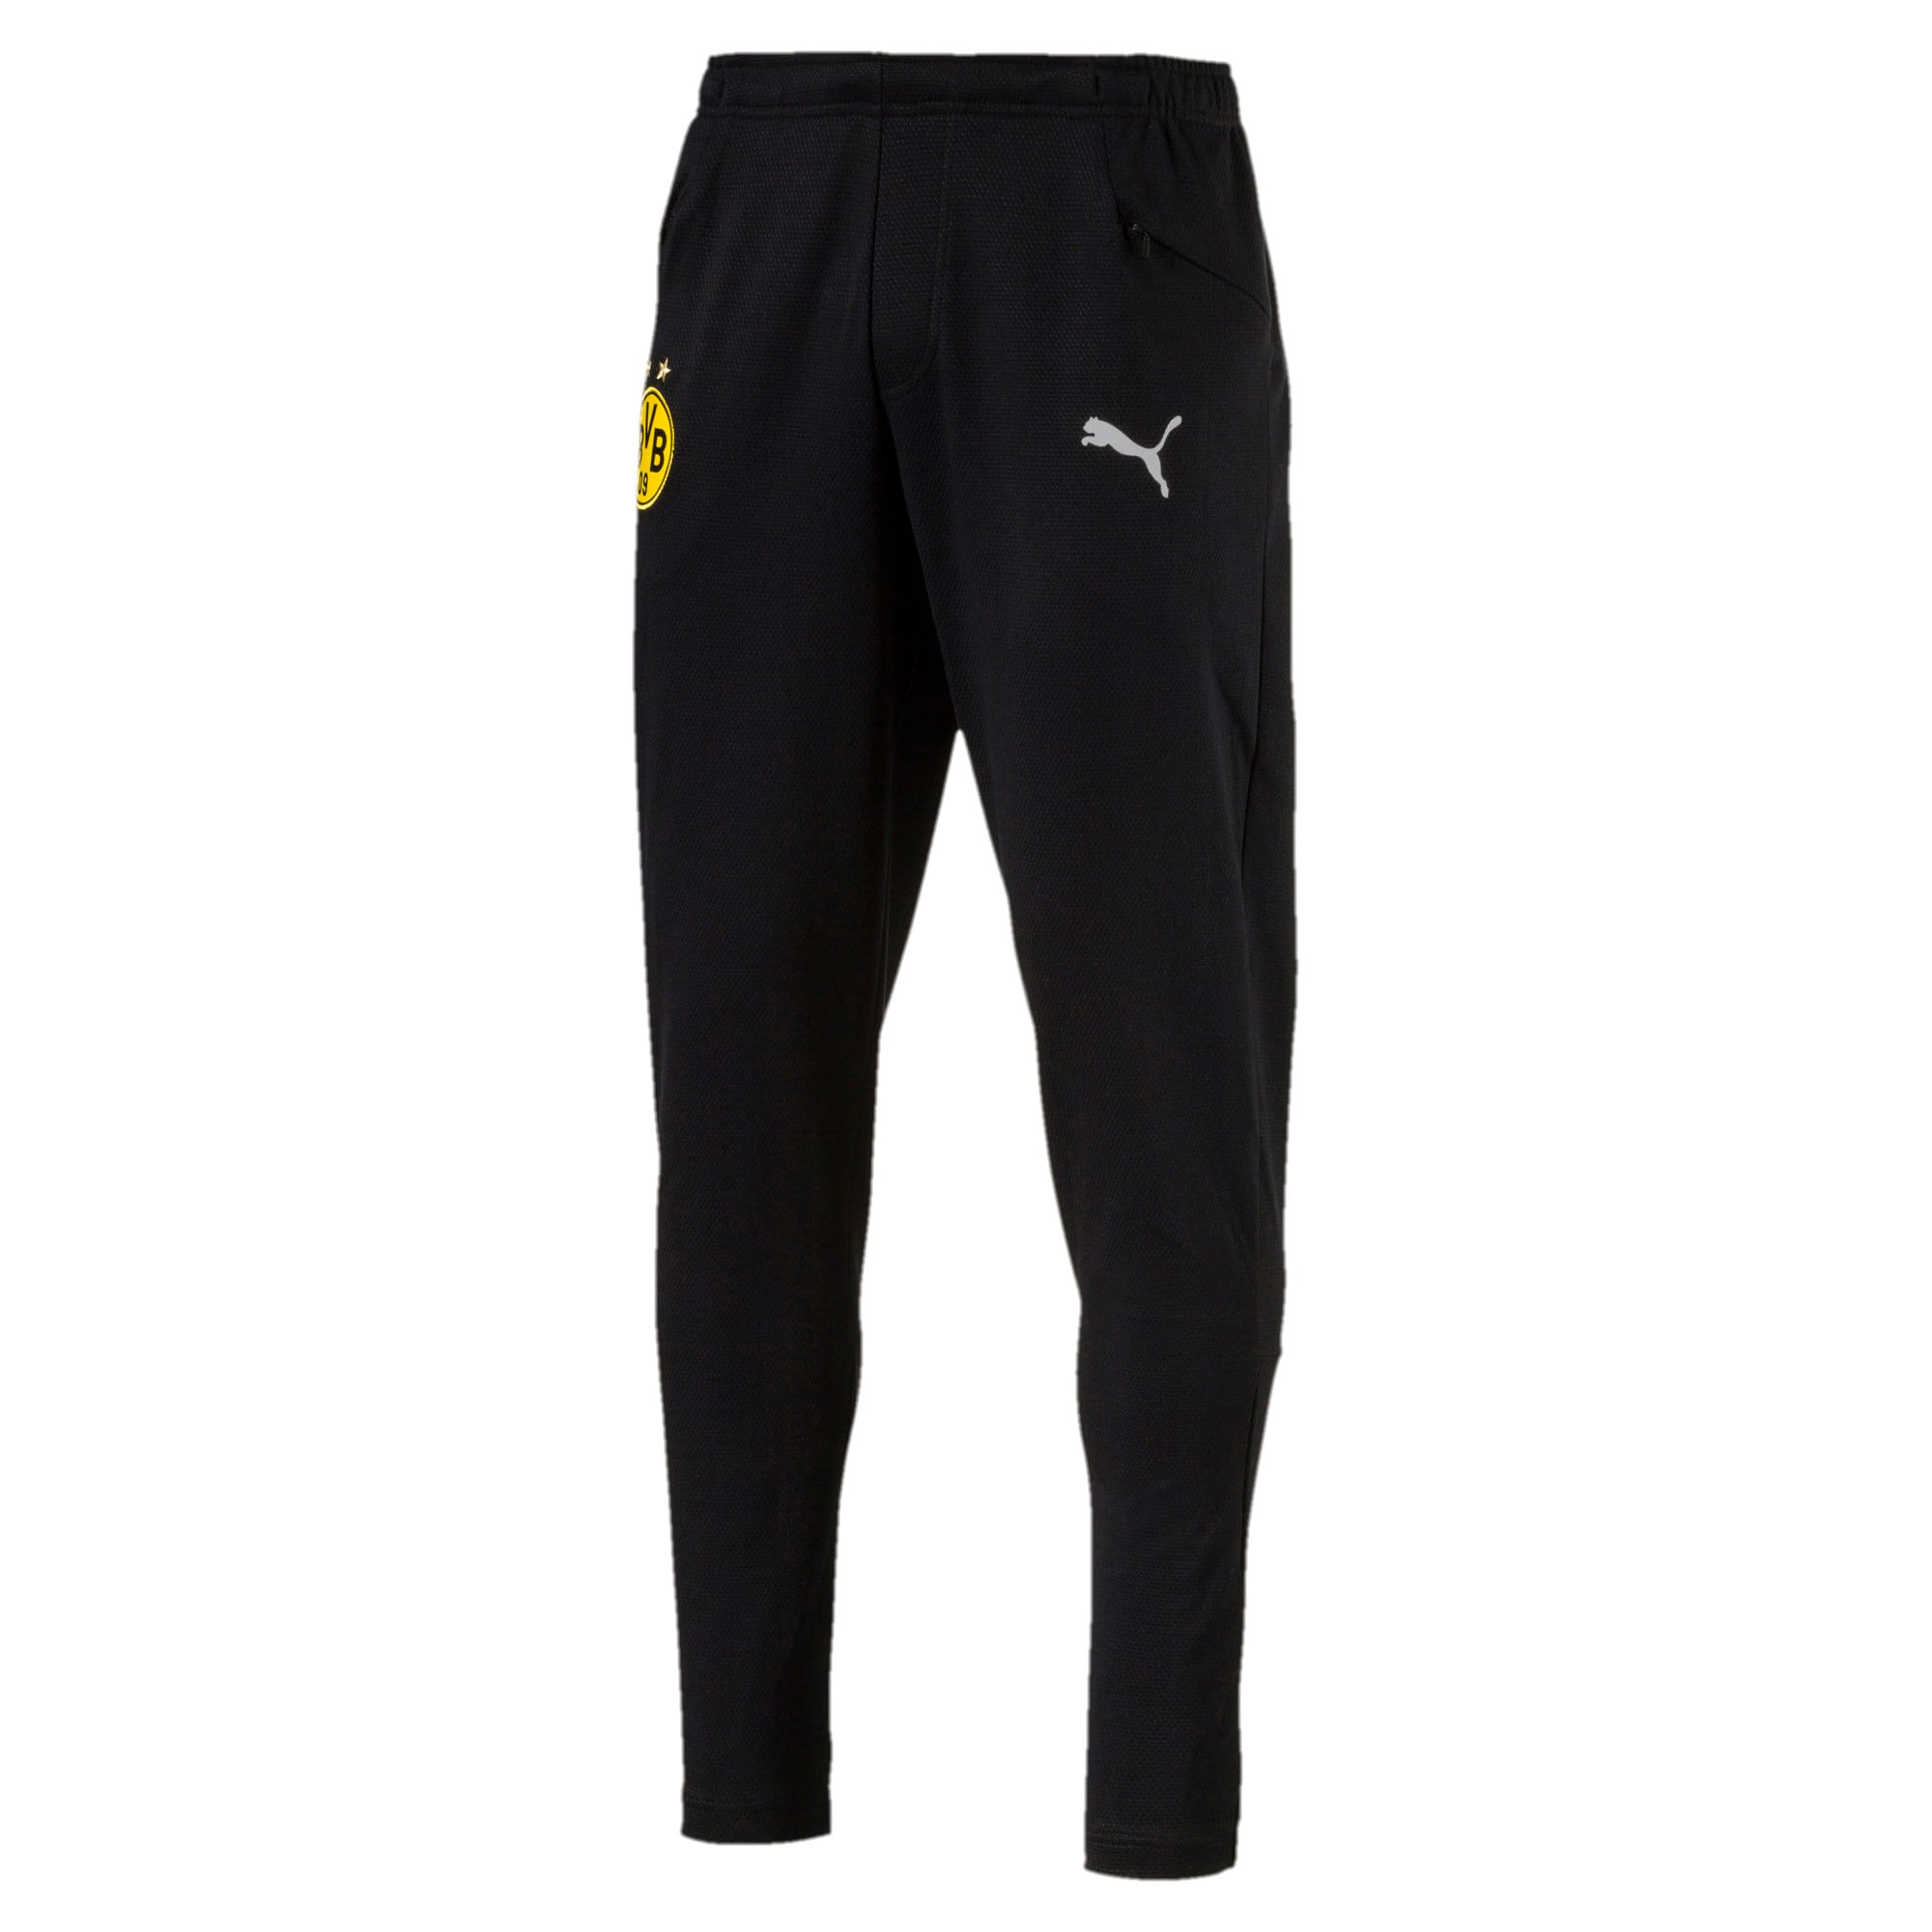 Thumbnail 1 of BVB Casual Men's Sweatpants, Puma Black, medium